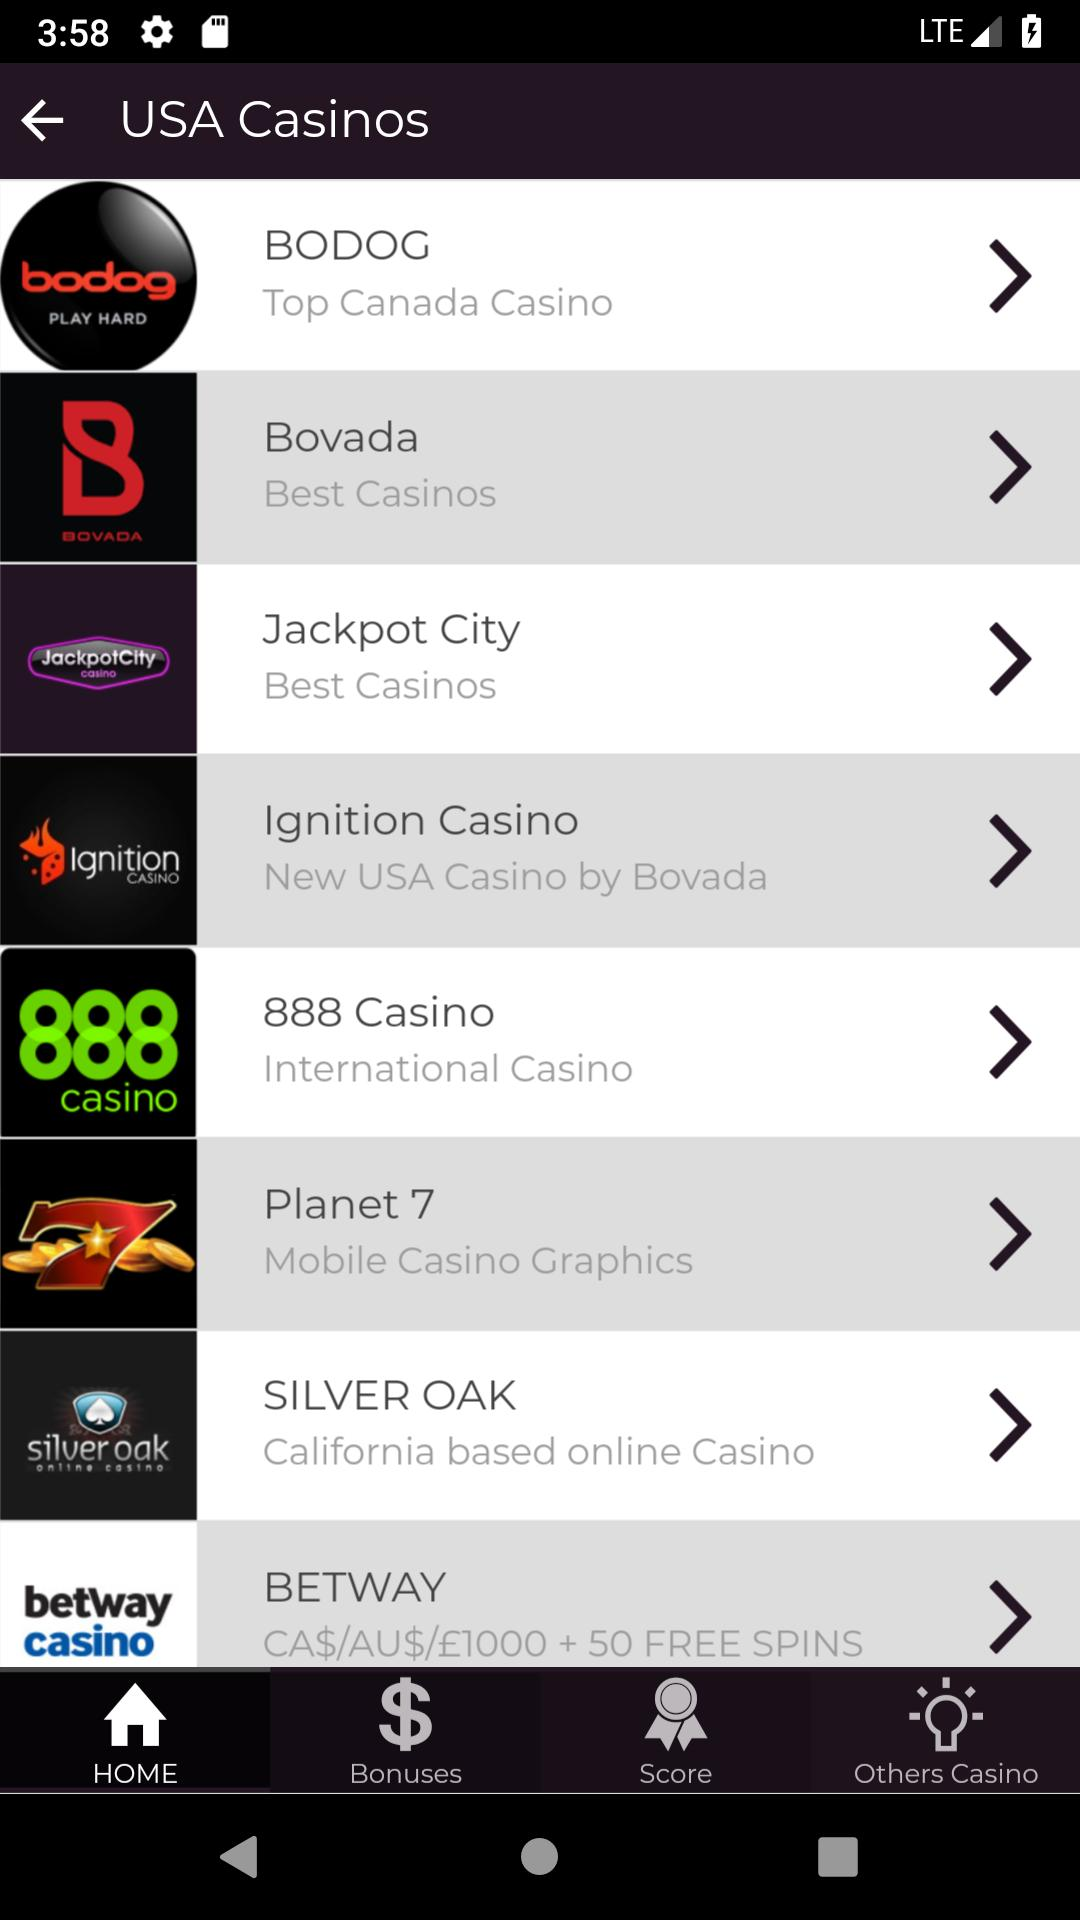 Bet365 Mobile Casino Tools for Android - APK Download